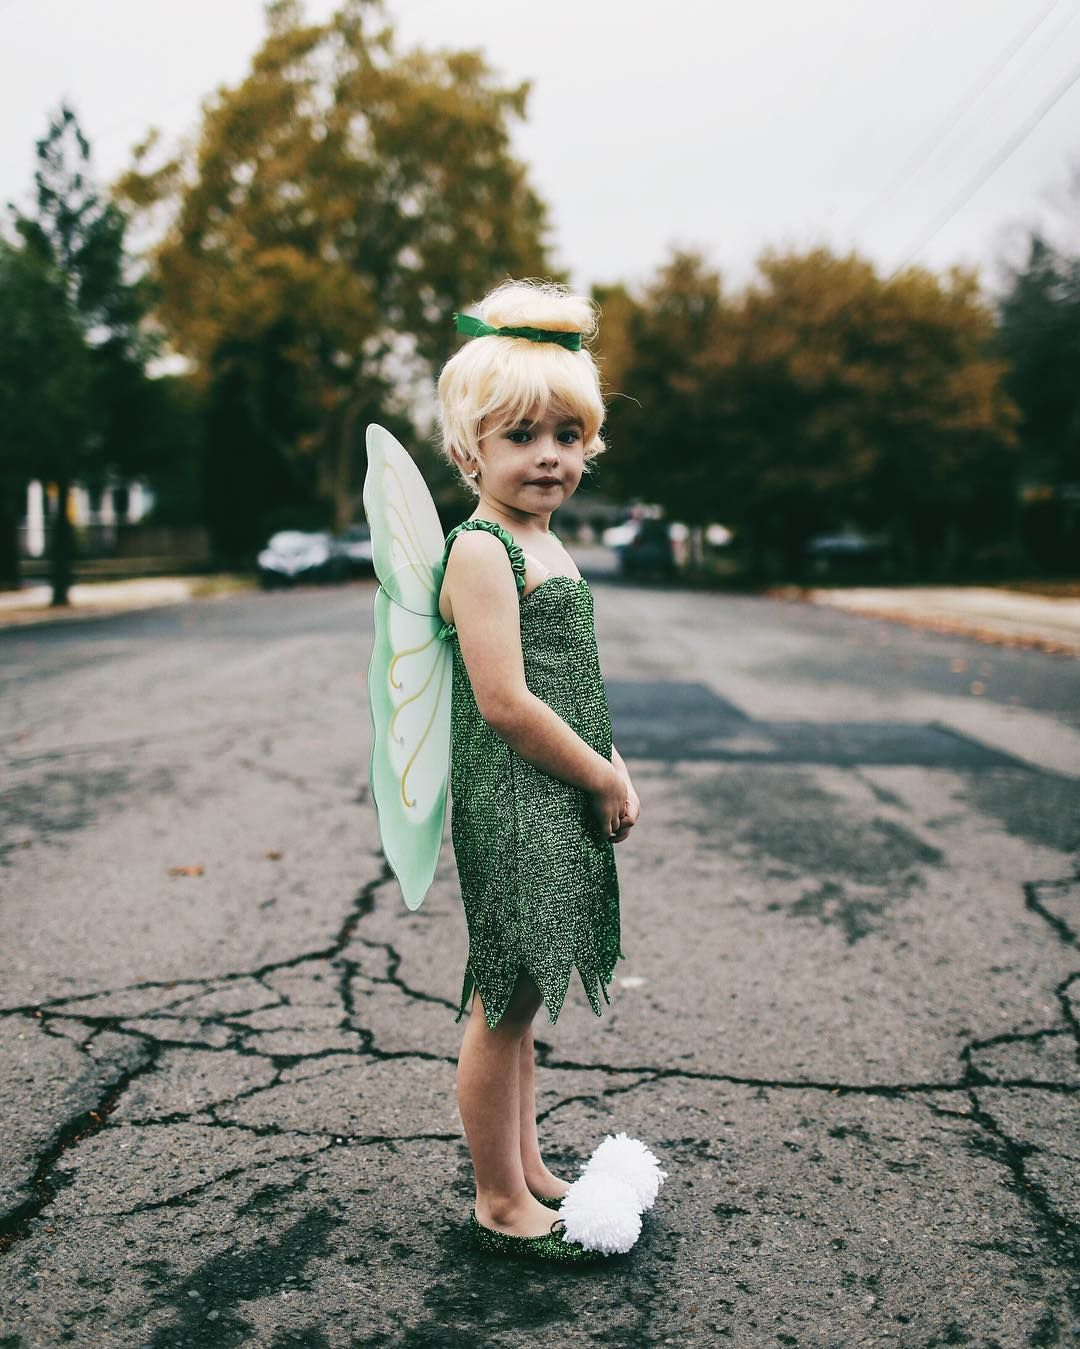 ✨ tink ✨ // a little more halloween twinkle // #ruepenelope #tinkerbell #halloween